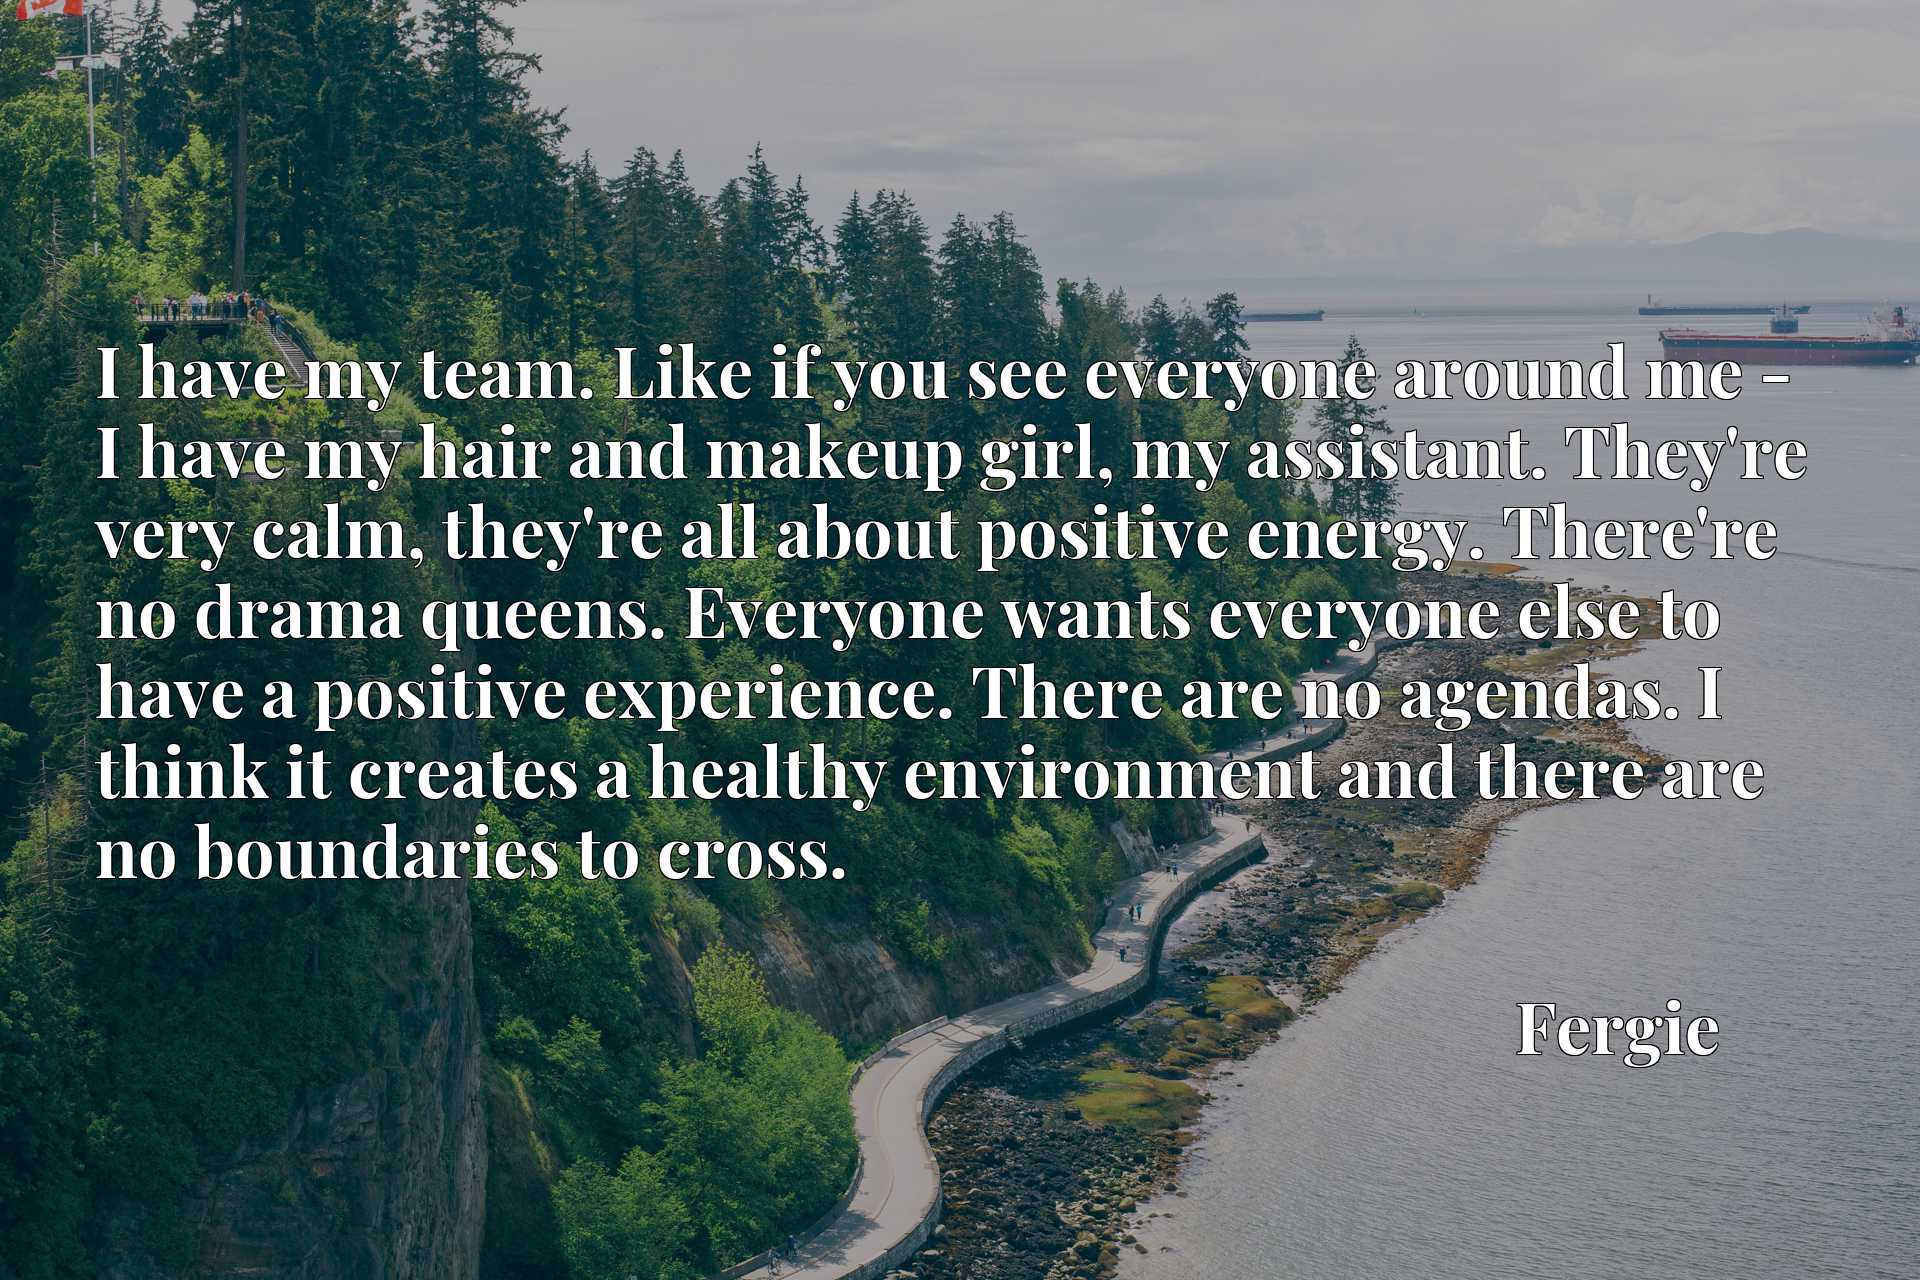 I have my team. Like if you see everyone around me - I have my hair and makeup girl, my assistant. They're very calm, they're all about positive energy. There're no drama queens. Everyone wants everyone else to have a positive experience. There are no agendas. I think it creates a healthy environment and there are no boundaries to cross.